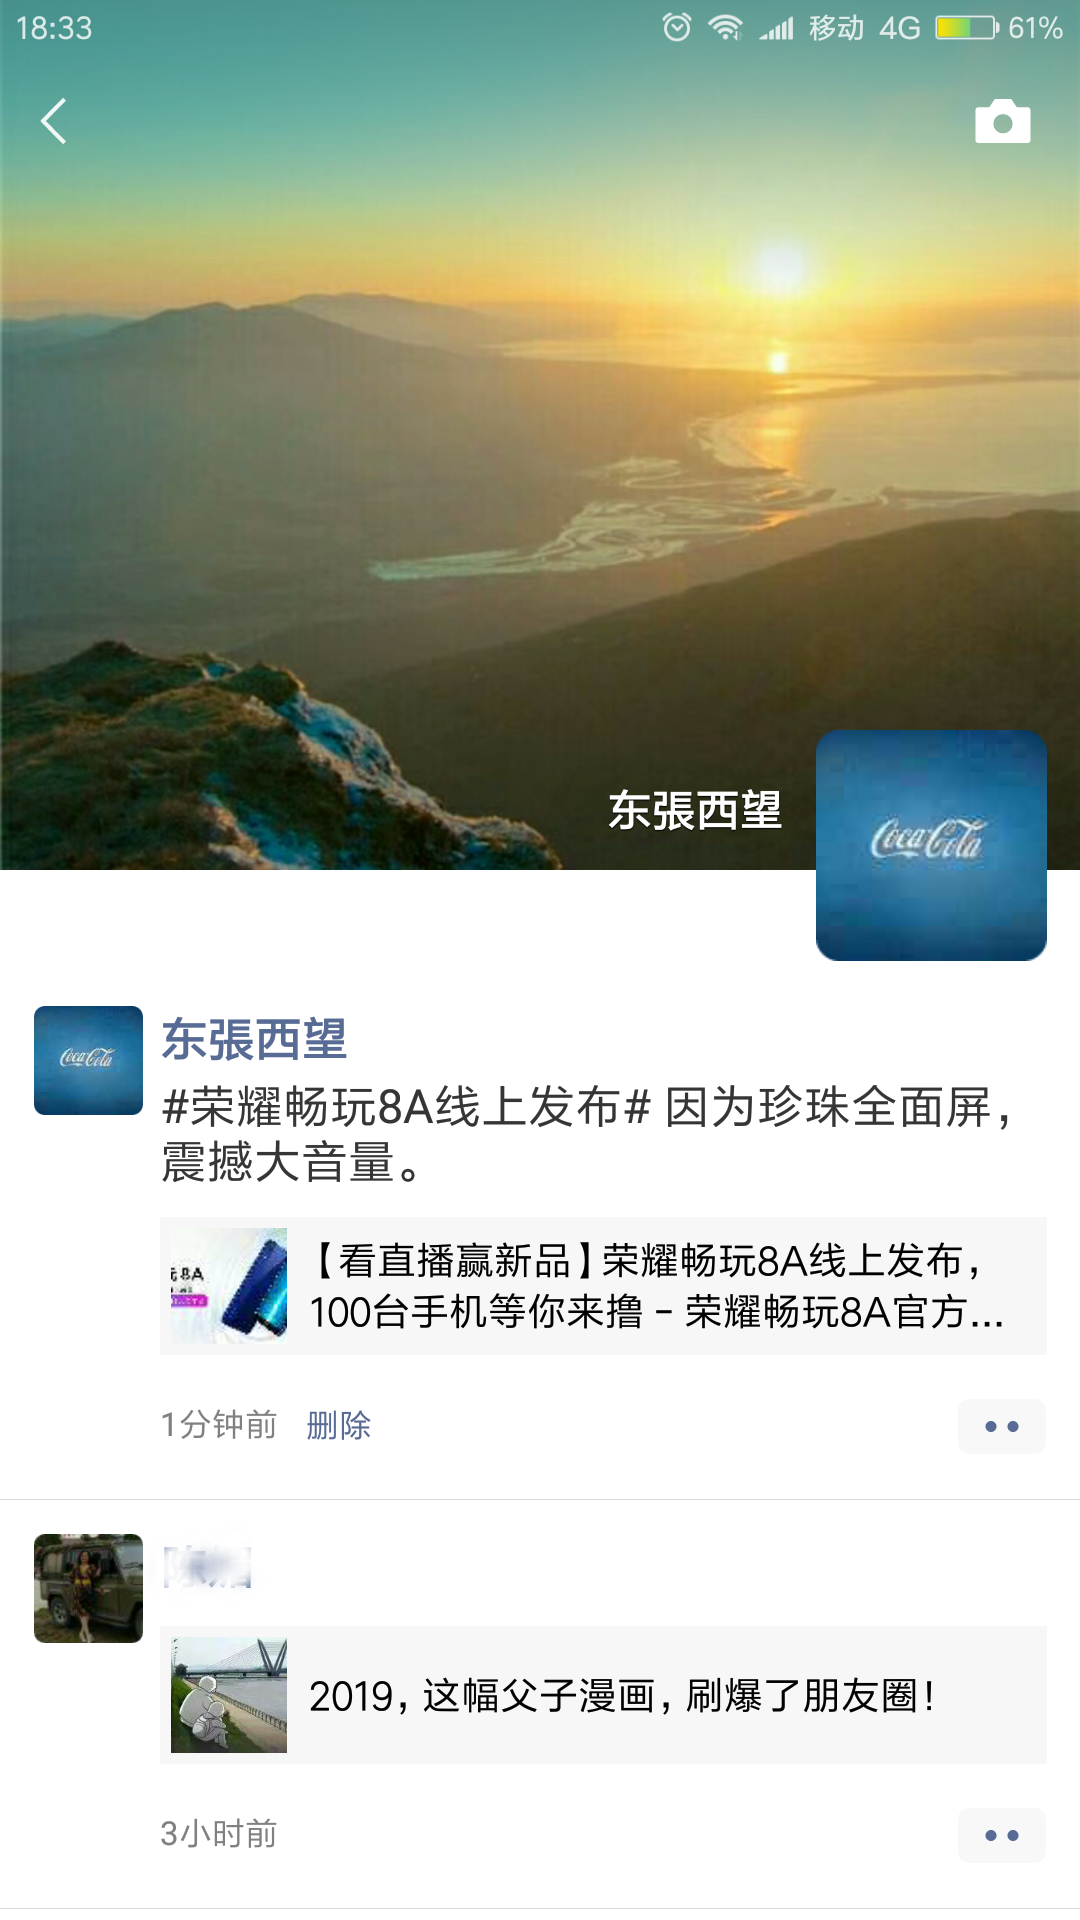 Screenshot_2019-01-09-18-33-48-003_com.tencent.mm.png